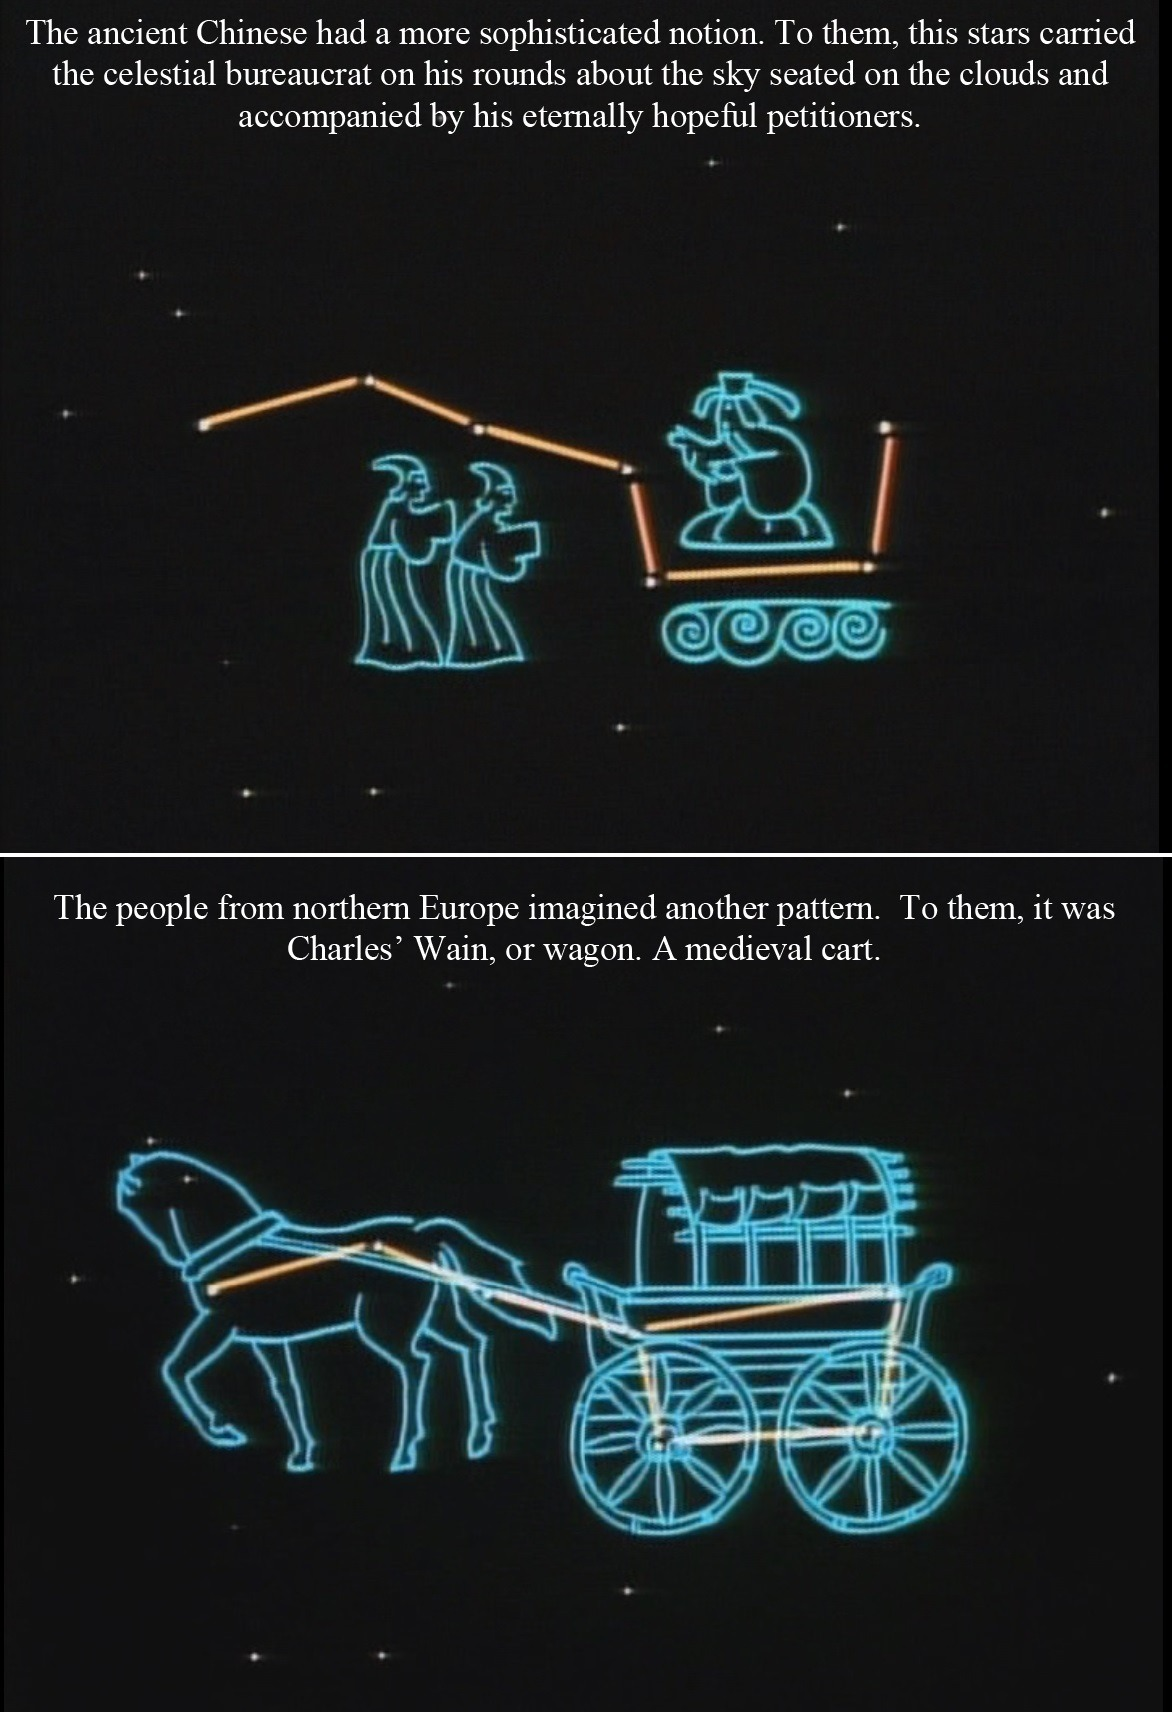 The ancient Chinese had a more sophisticated notion. To them, the stars carried a celestial bureaucrat on his rounds about the sky, seated on the clouds and accompanied by his eternally hopeful petitioners. The people of Northern Europe imaged another pattern. To them, it was Charles' Wain, or wagon. A medieval cart.